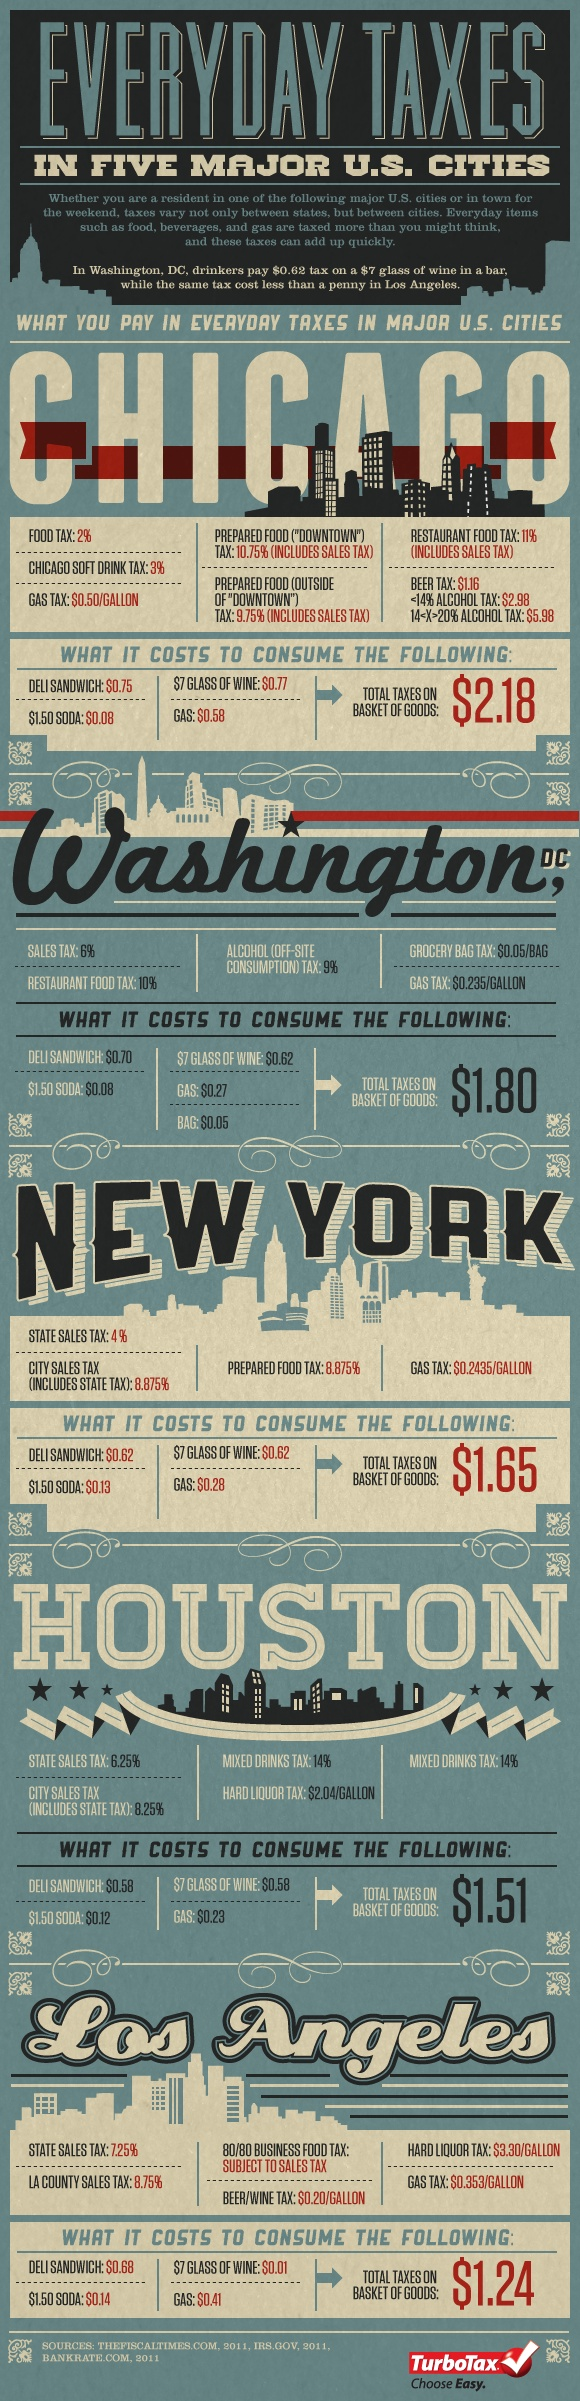 infographic/poster design